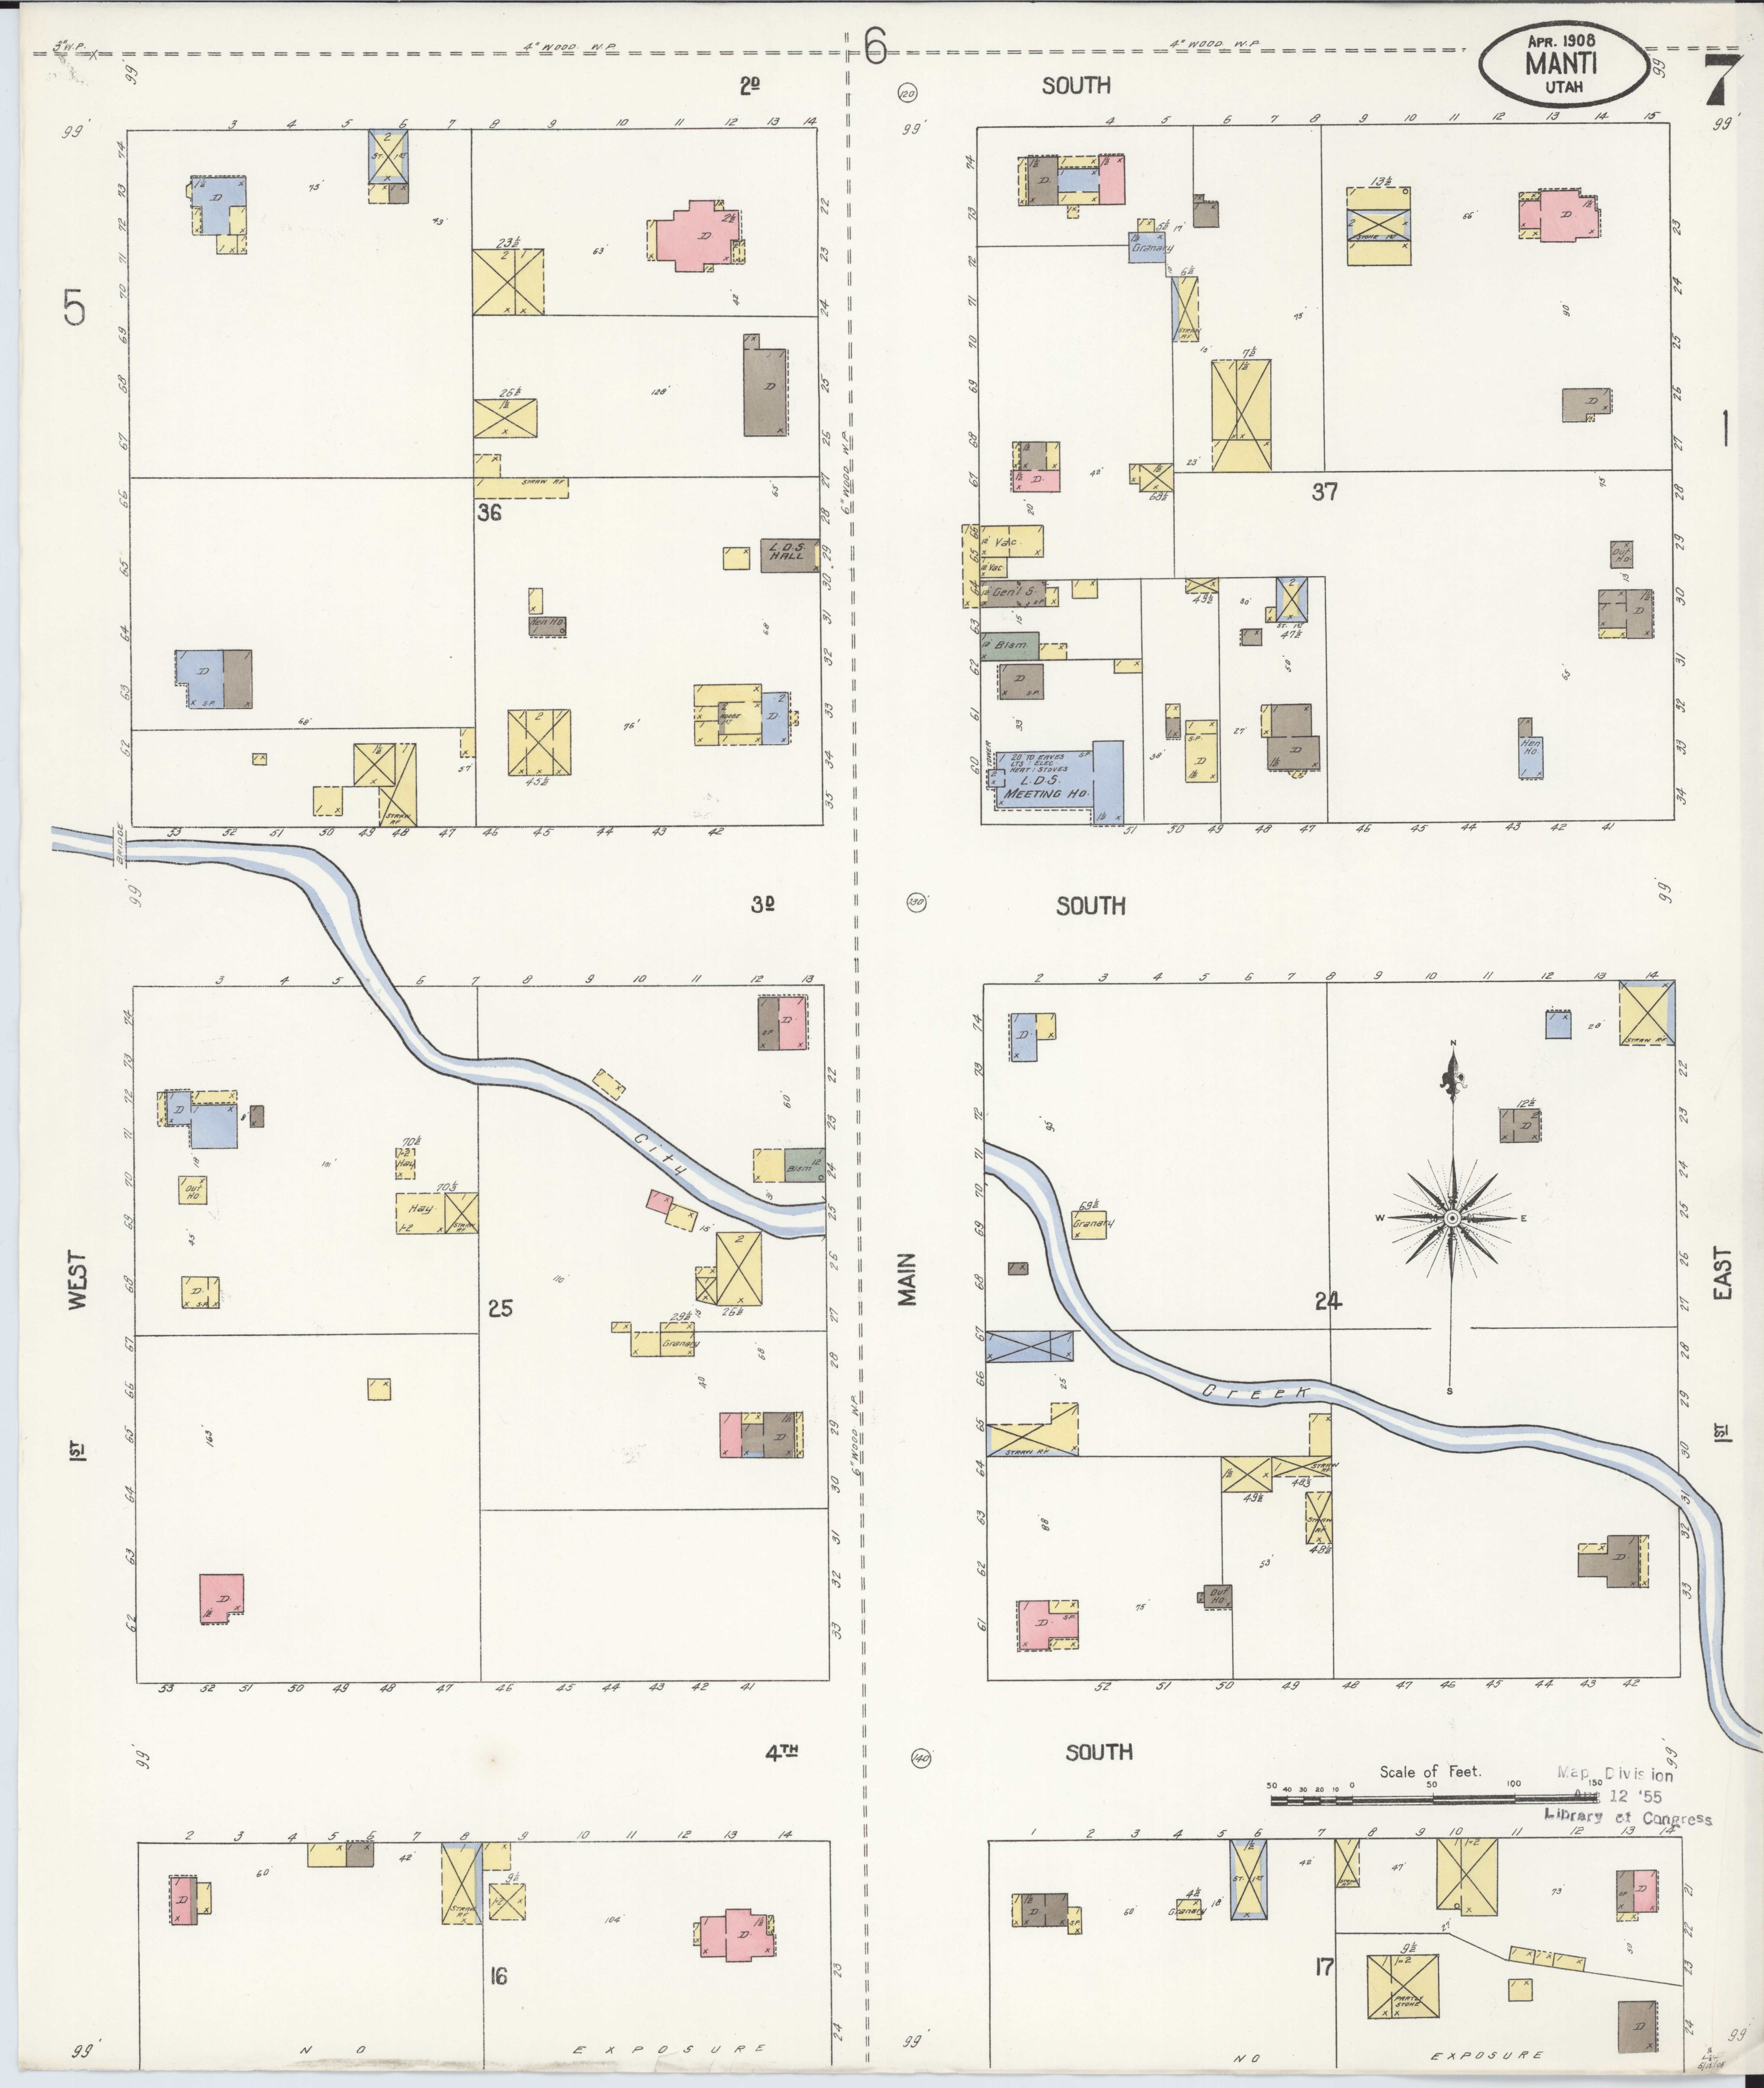 Sanpete County Utah Map.File Sanborn Fire Insurance Map From Manti Sanpete County Utah